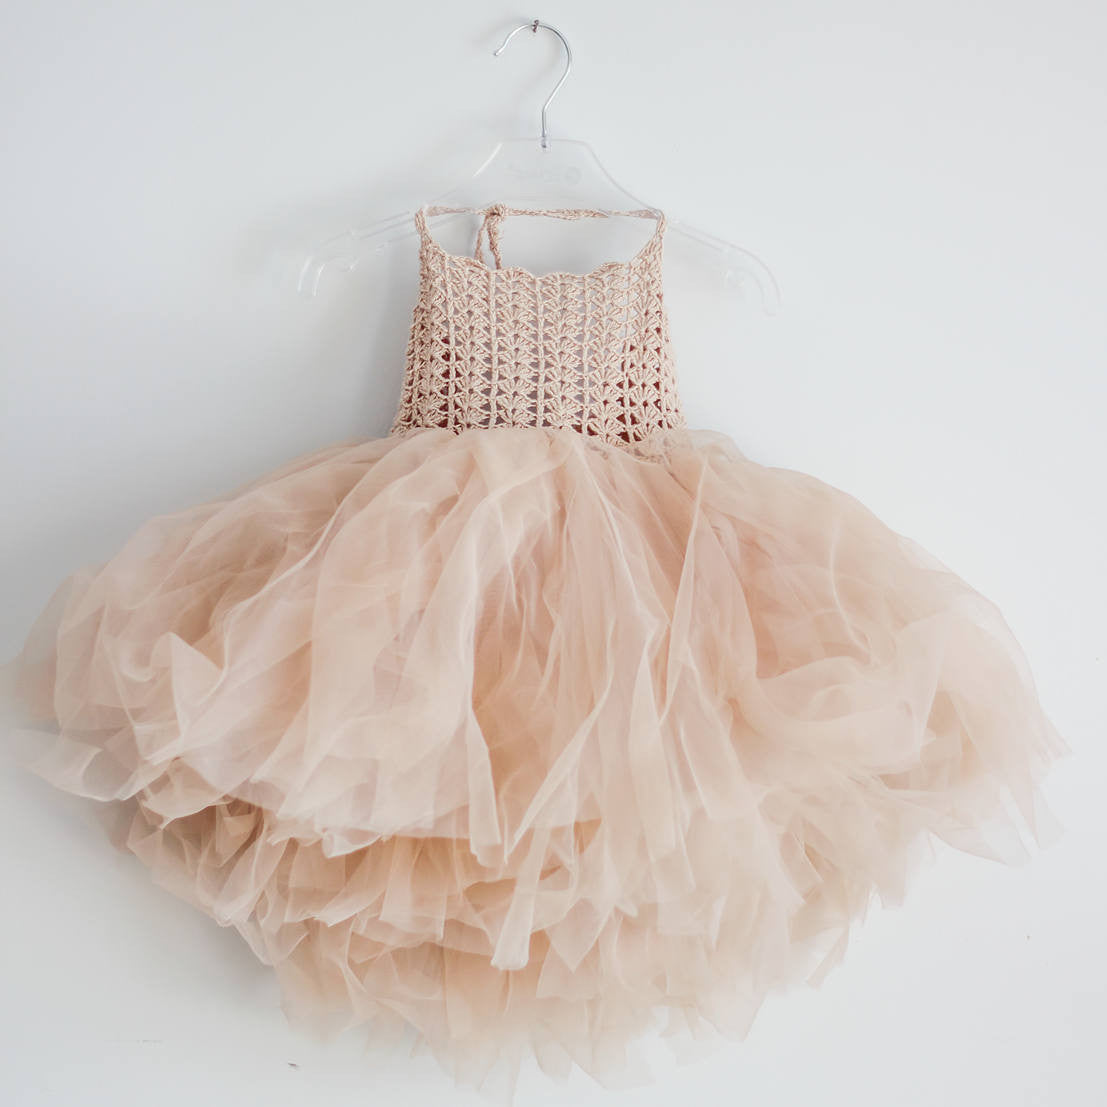 Halter Tutu Dress with Stretch Crochet  Bustier - Beige